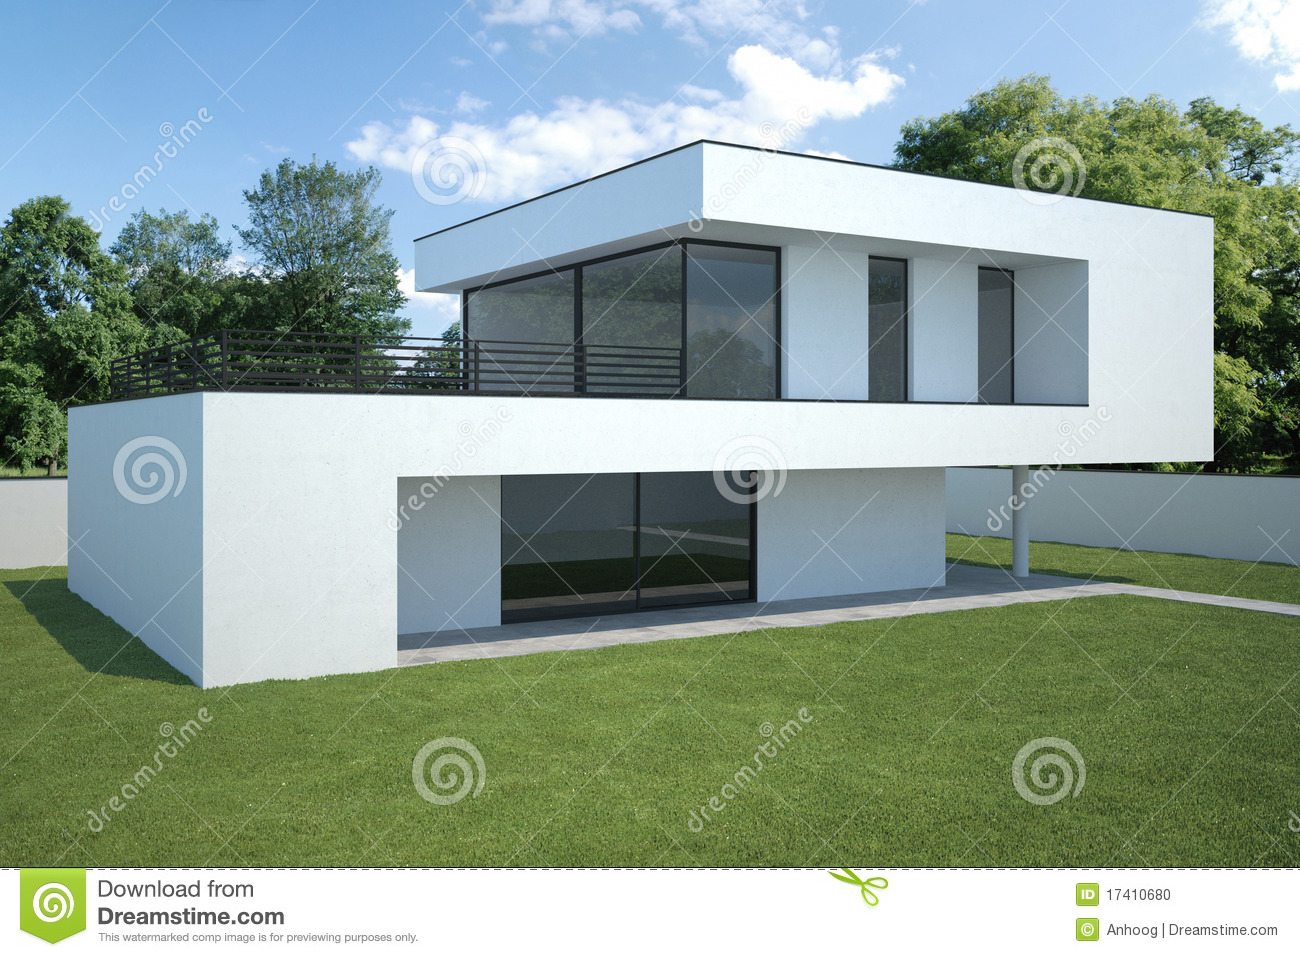 Modern huis buitenkant met gazon stock illustratie for Piani casa moderna ranch